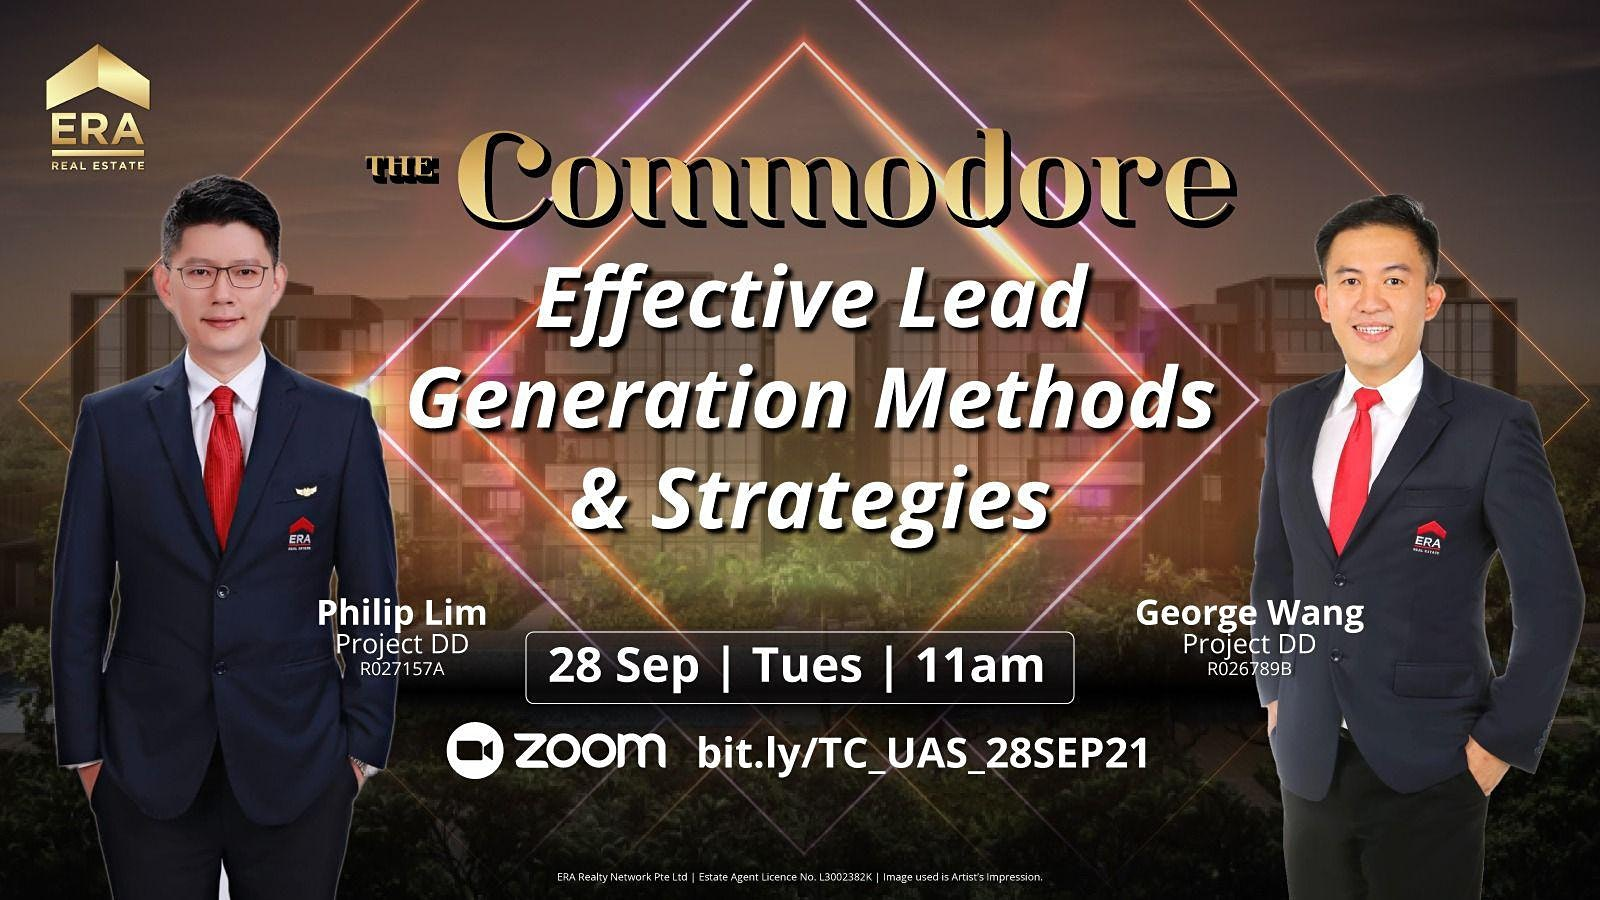 Effective Lead Generation Methods and Strategies (The Commodore)